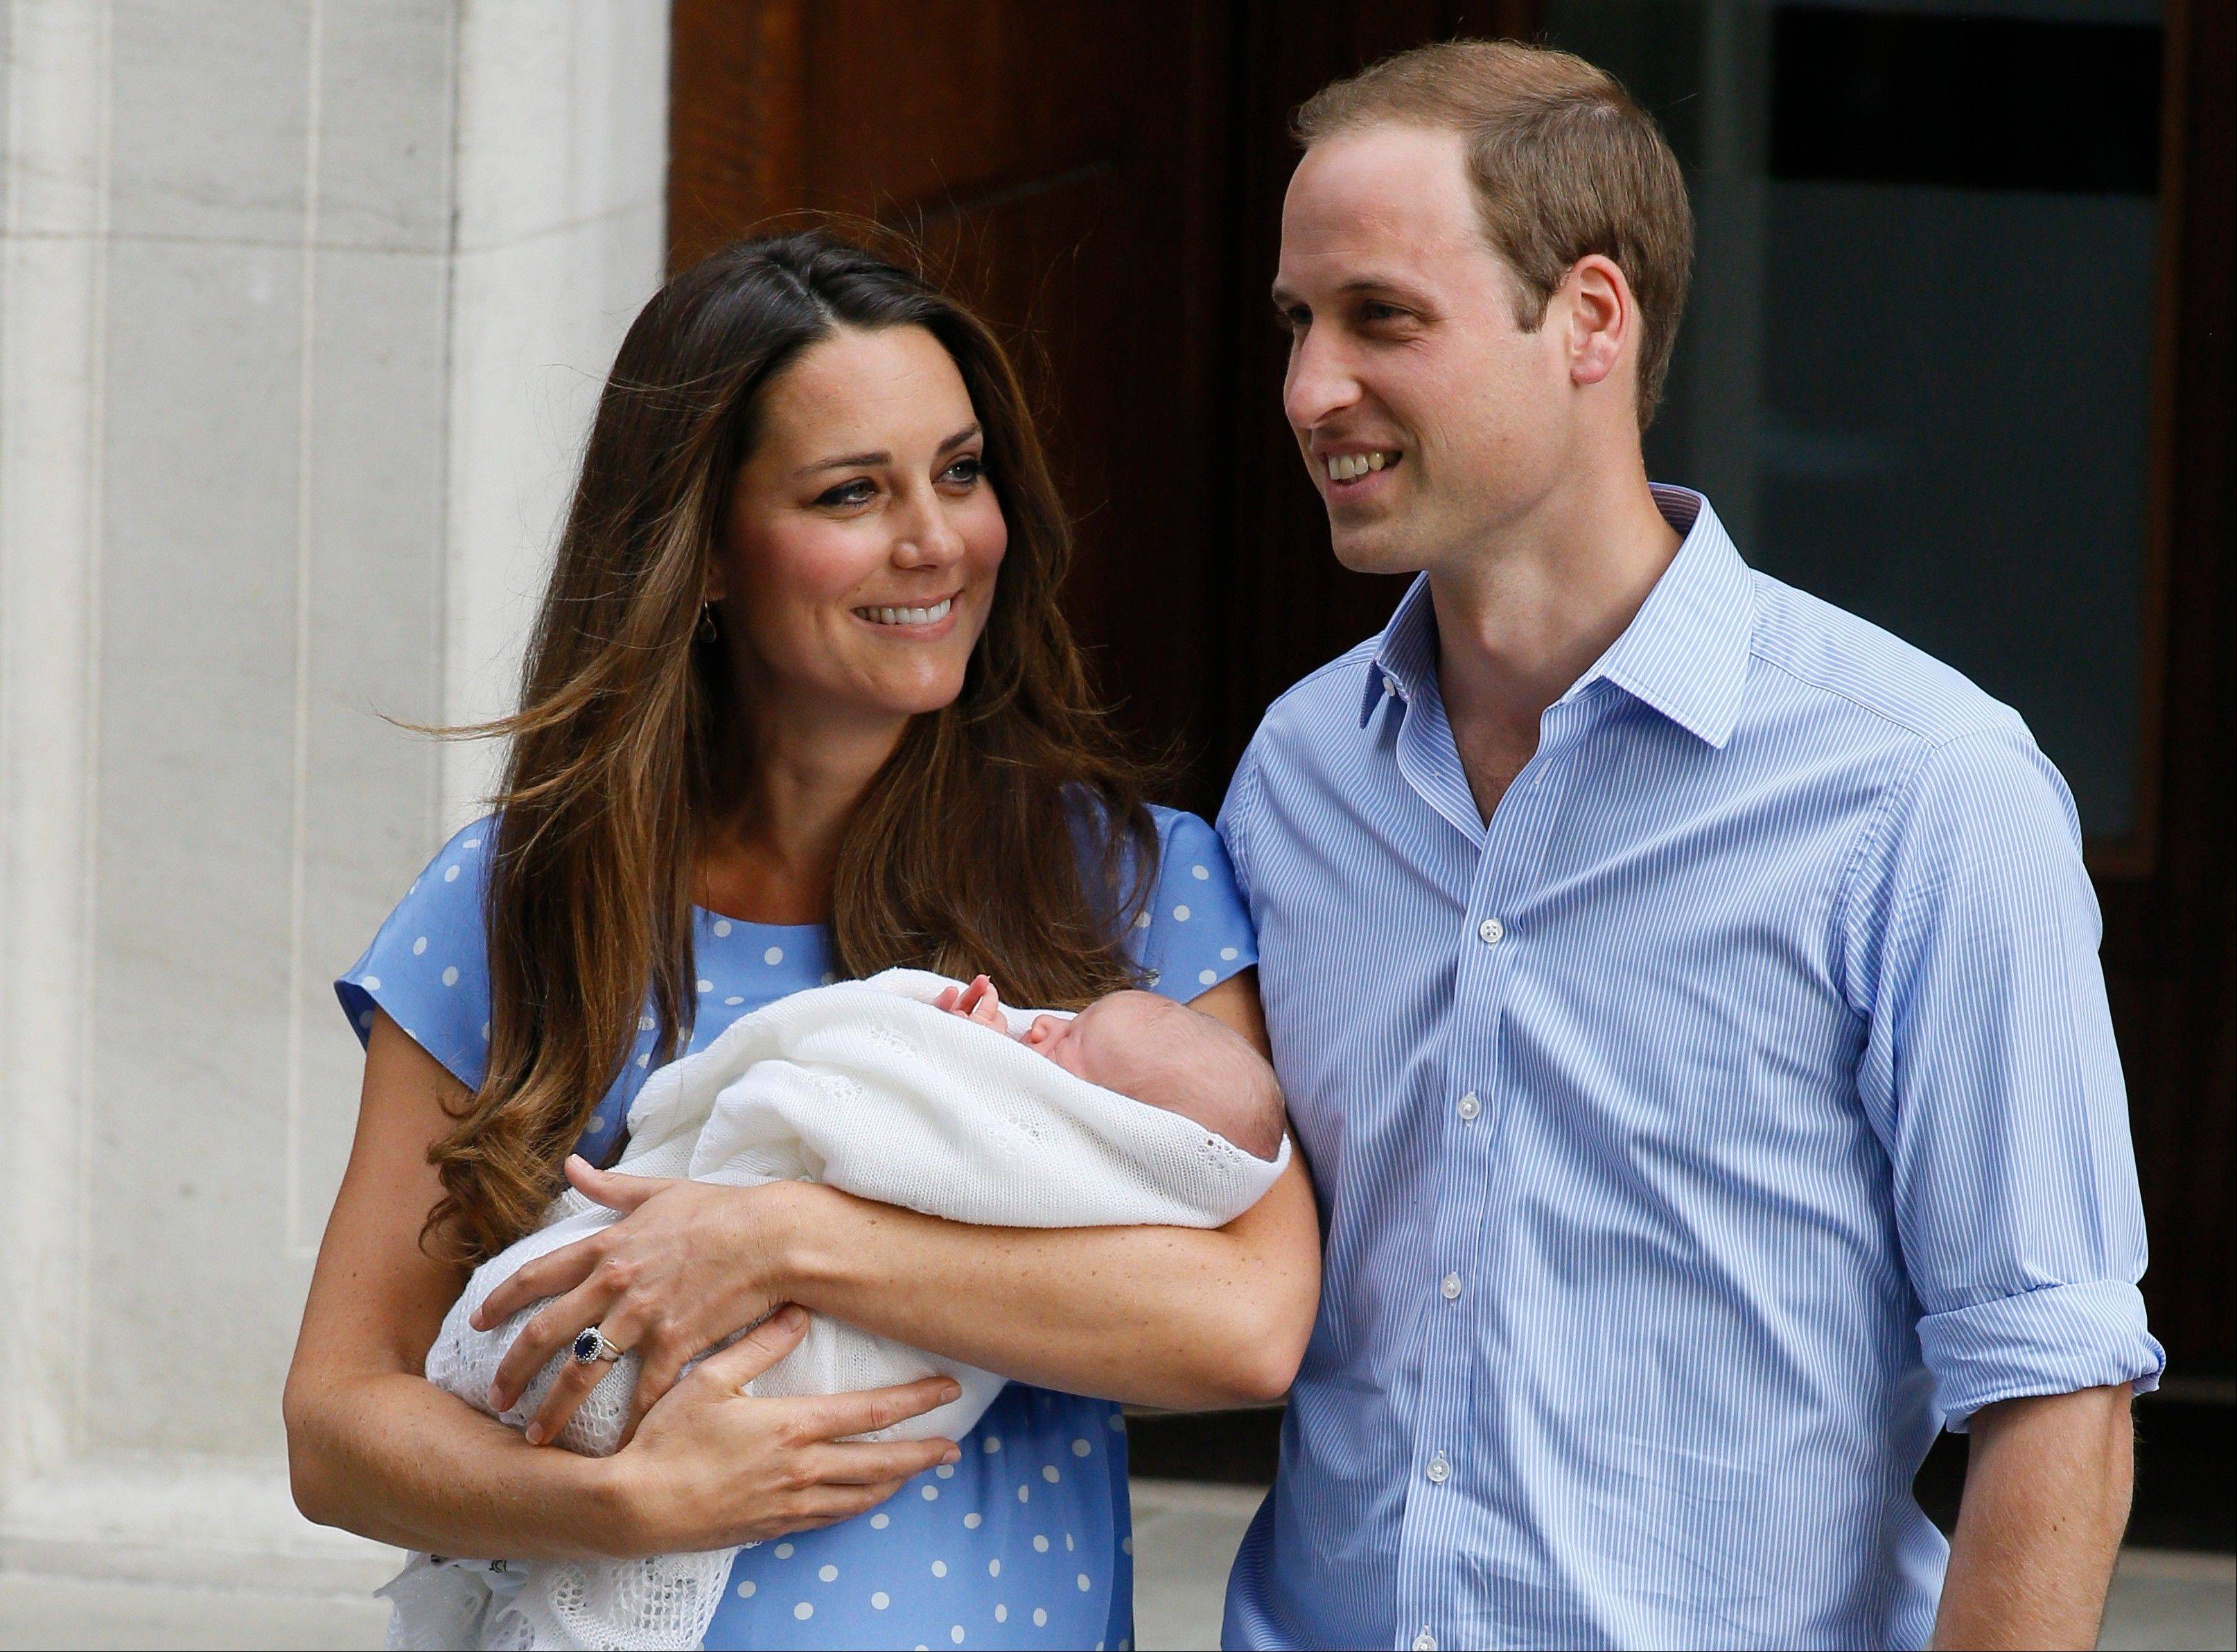 Britain's Prince William, right, and Kate, Duchess of Cambridge hold the Prince of Cambridge, Tuesday July 23, 2013, as they pose for photographers outside St. Mary's Hospital exclusive Lindo Wing in London.